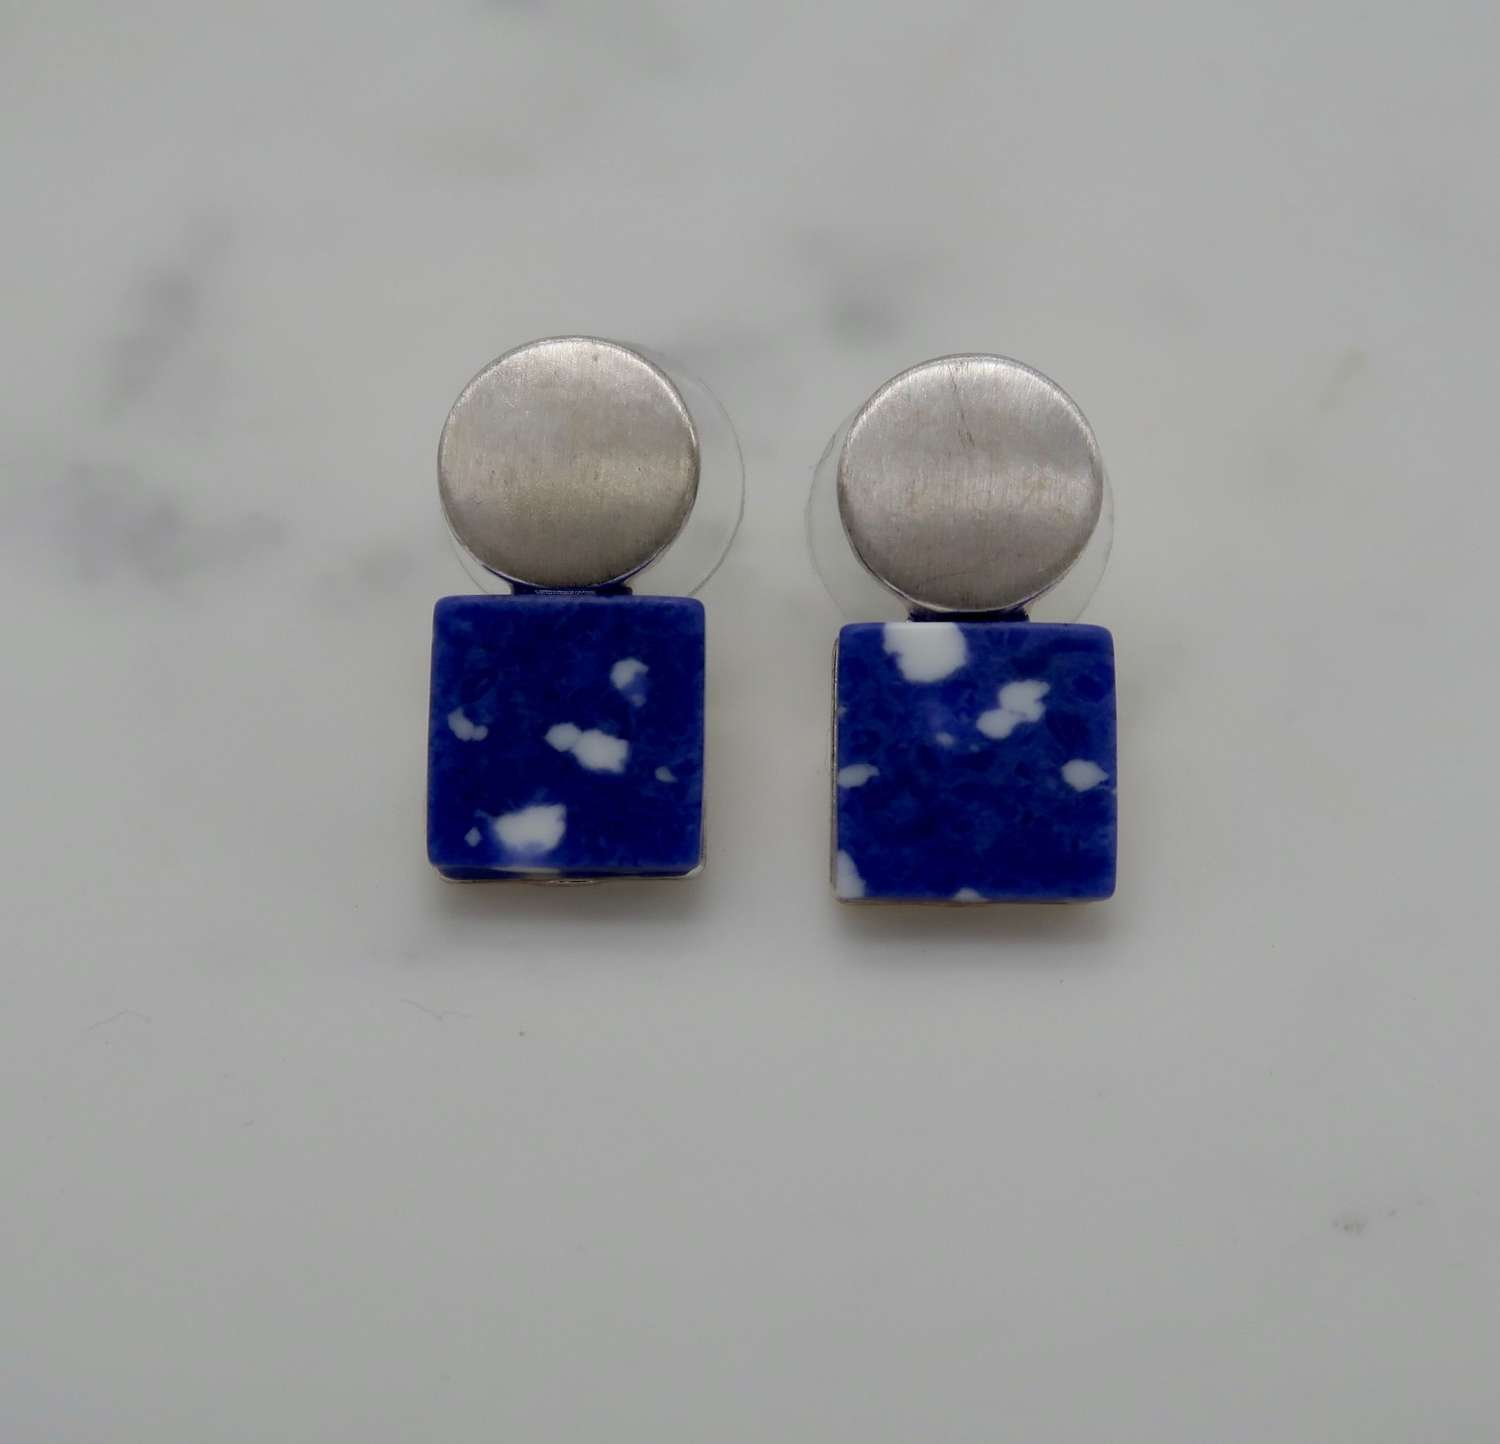 Square and circle earrings - navy